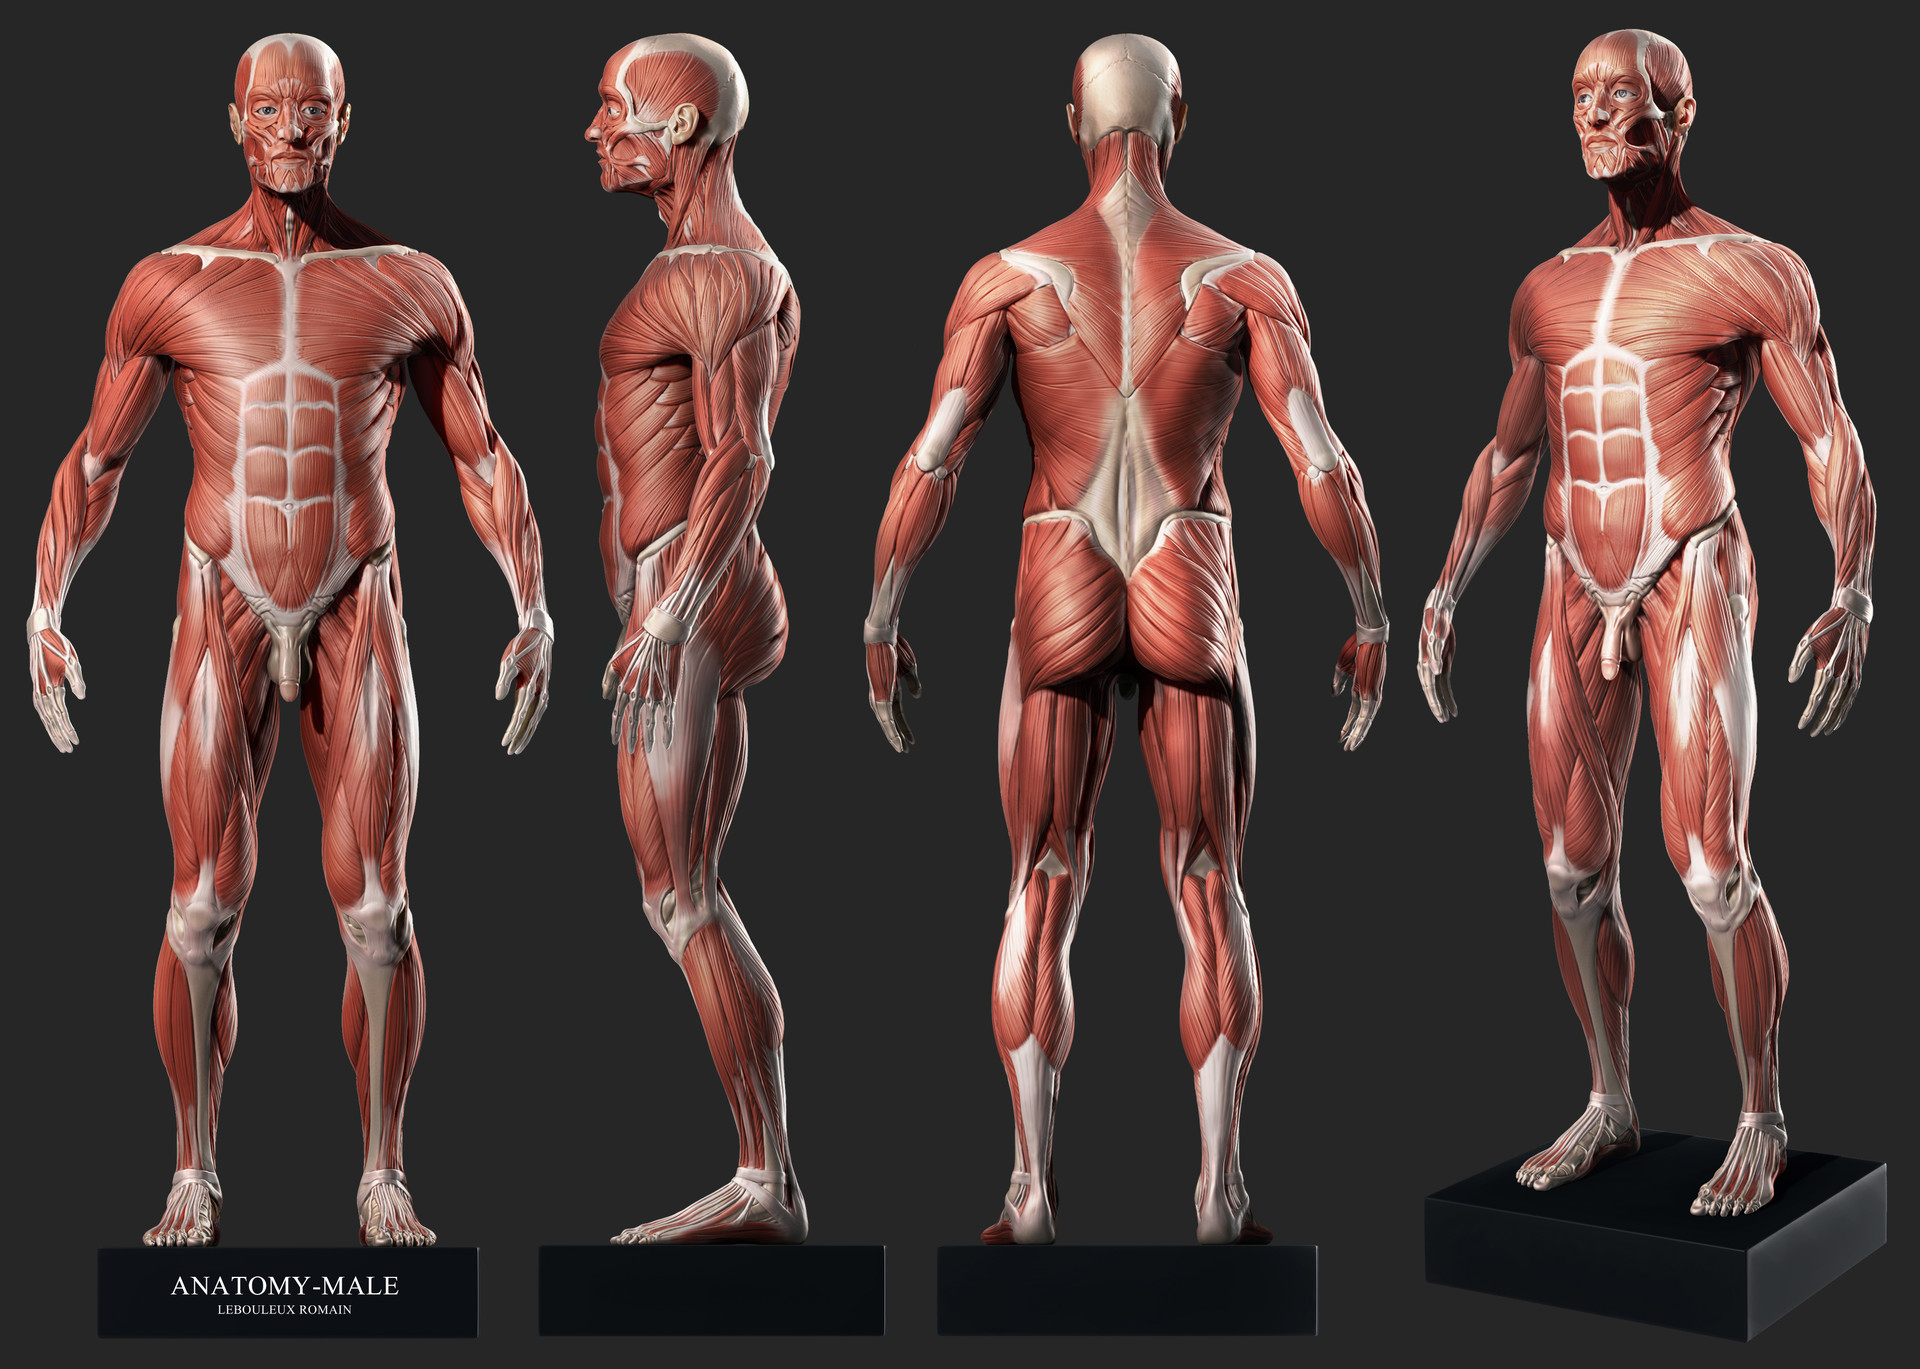 Modern Human Anatomy 3d Software Ideas - Anatomy and Physiology ...